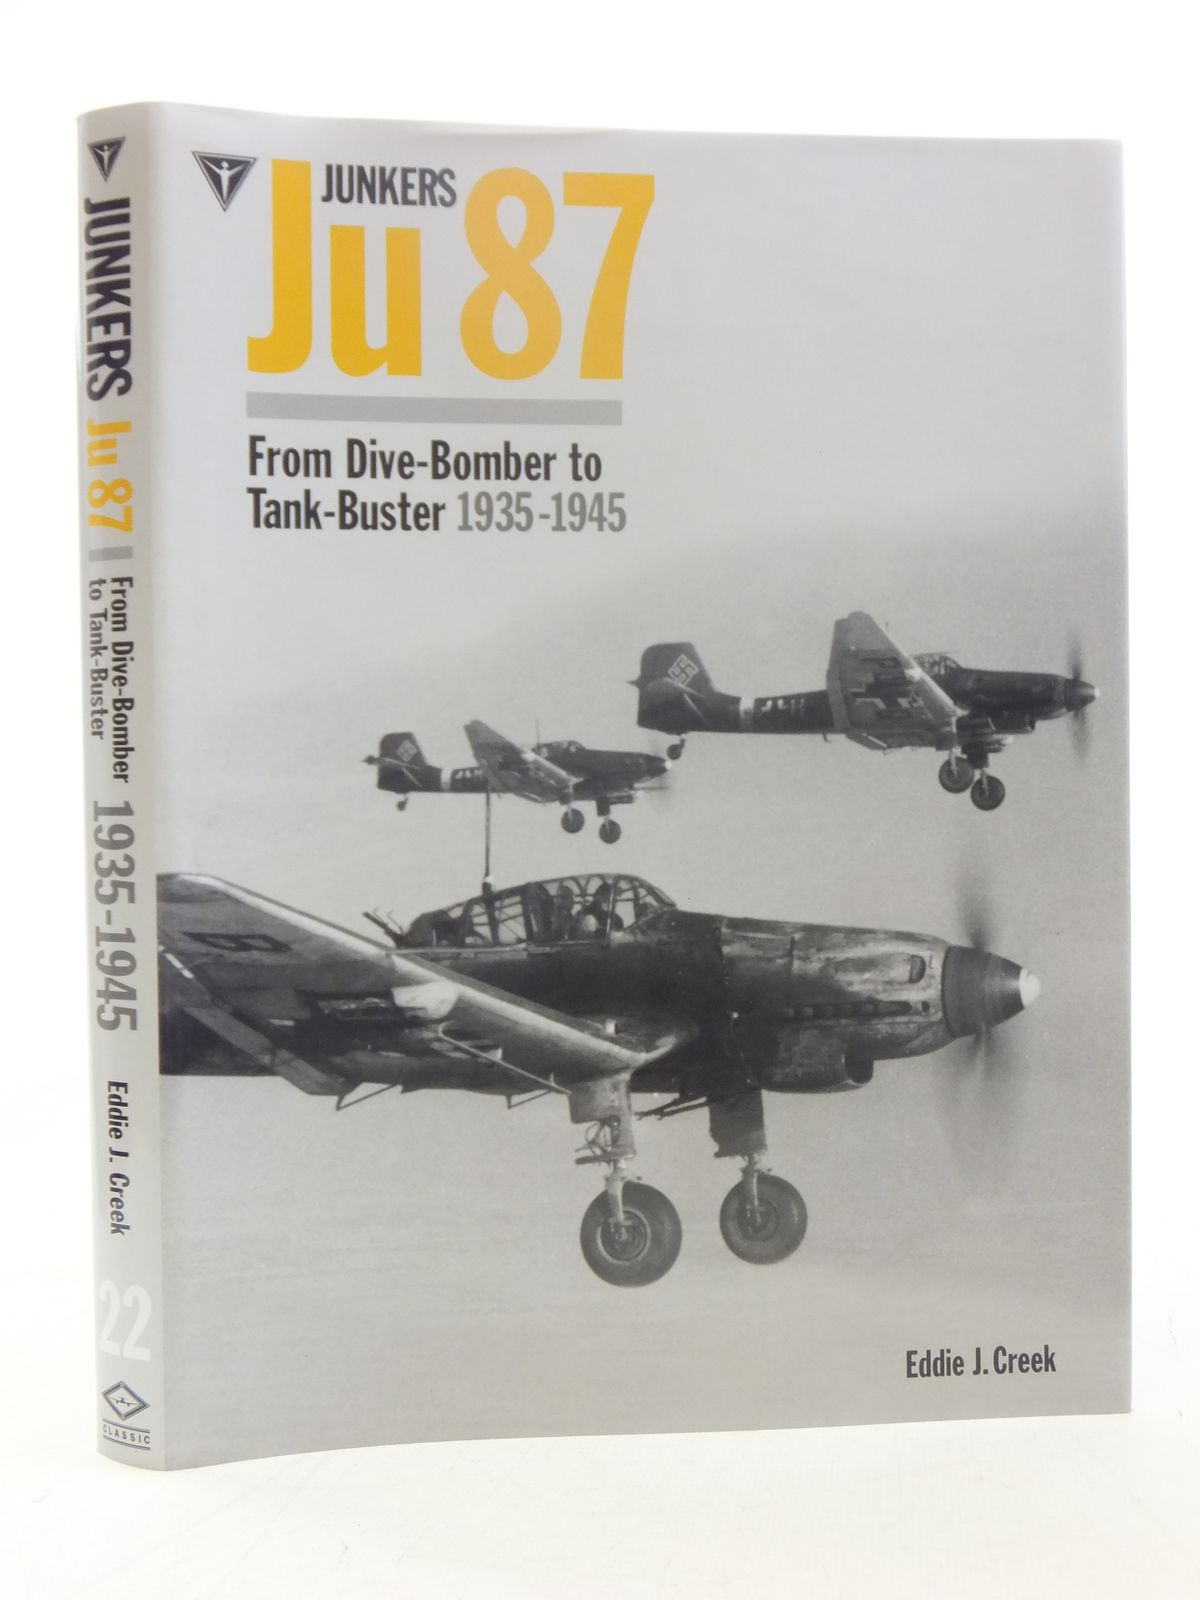 JUNKERS JU 87 FROM DIVE-BOMBER TO TANK-BUSTER 1935-1945 written by ...